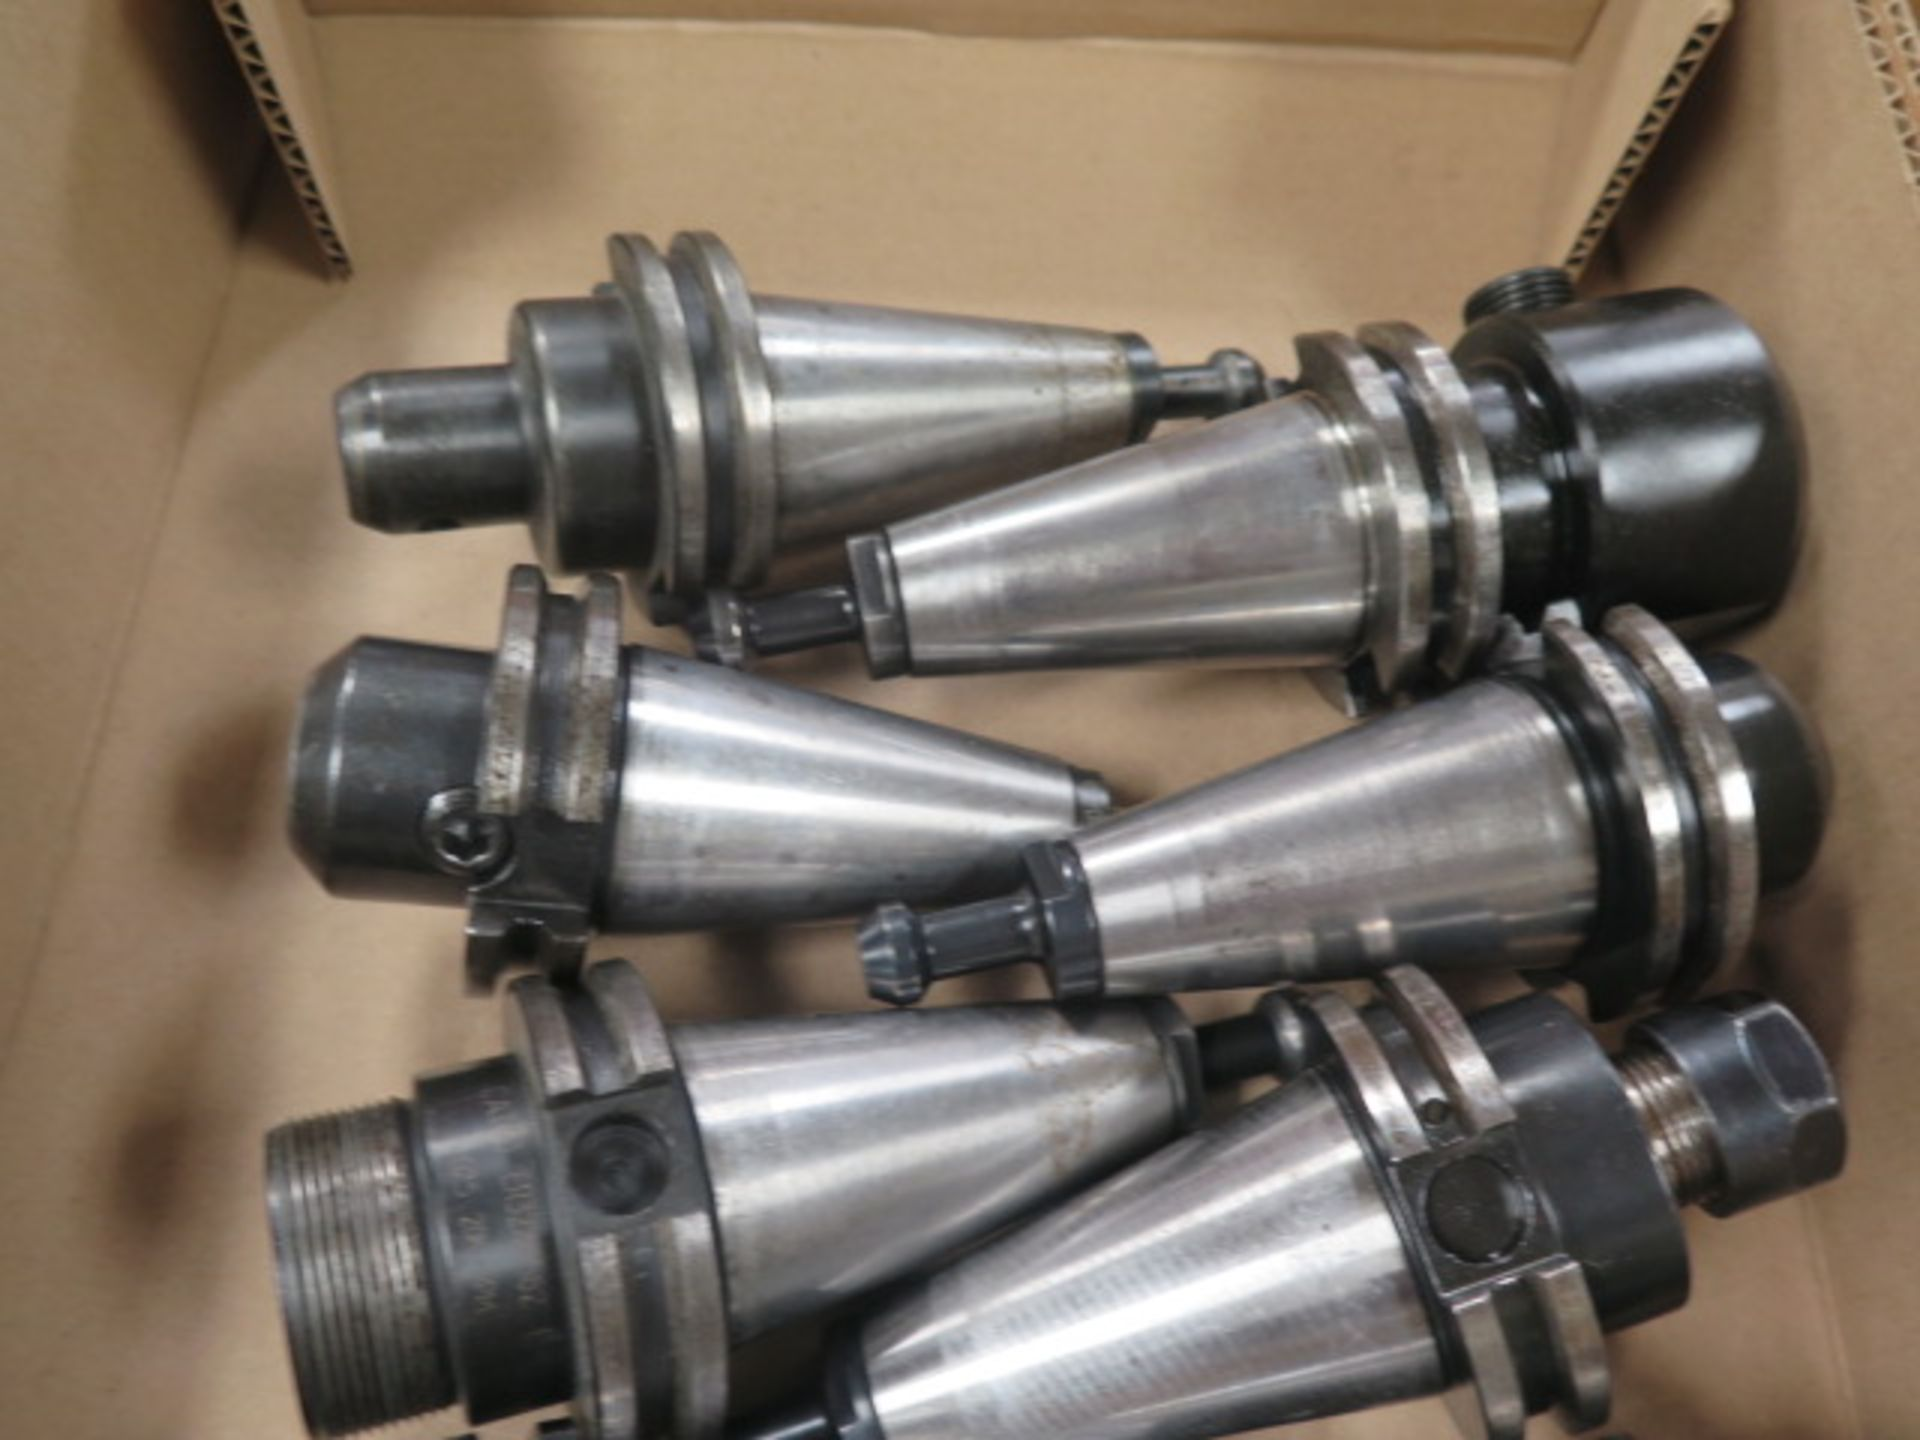 CAT-40 Taper Tooling (10) (SOLD AS-IS - NO WARRANTY) - Image 3 of 4